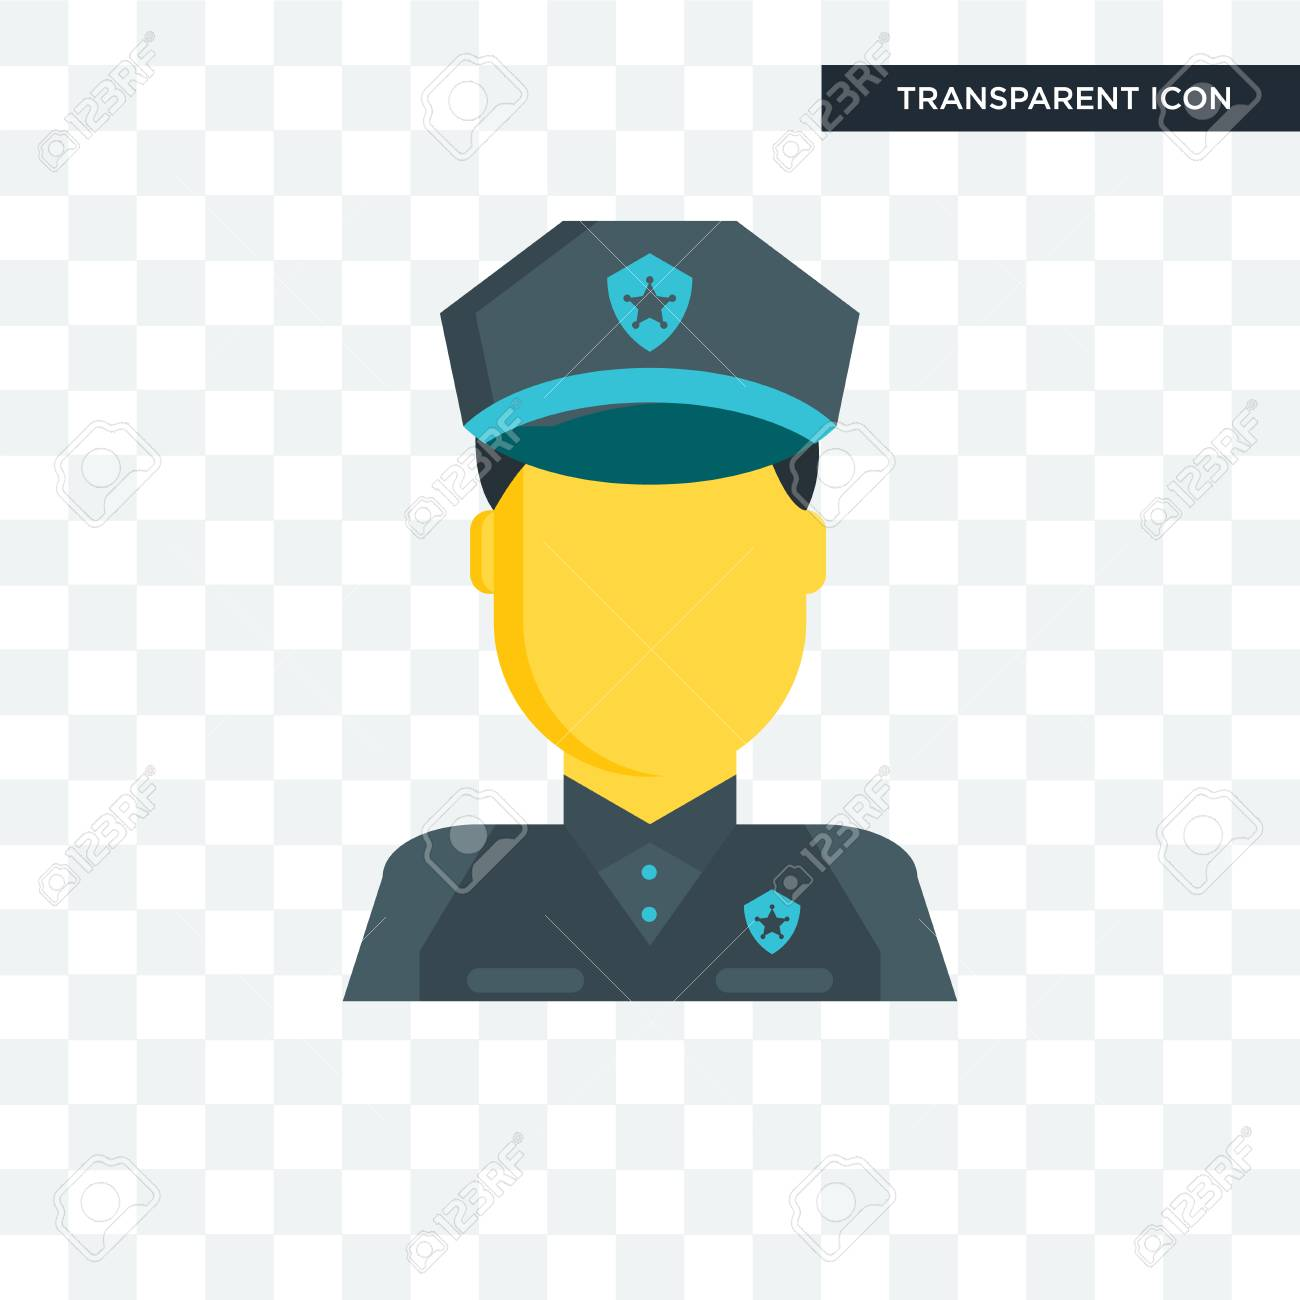 6310734cf7b7ba Police vector icon isolated on transparent background, Police logo concept  Stock Vector - 108262619